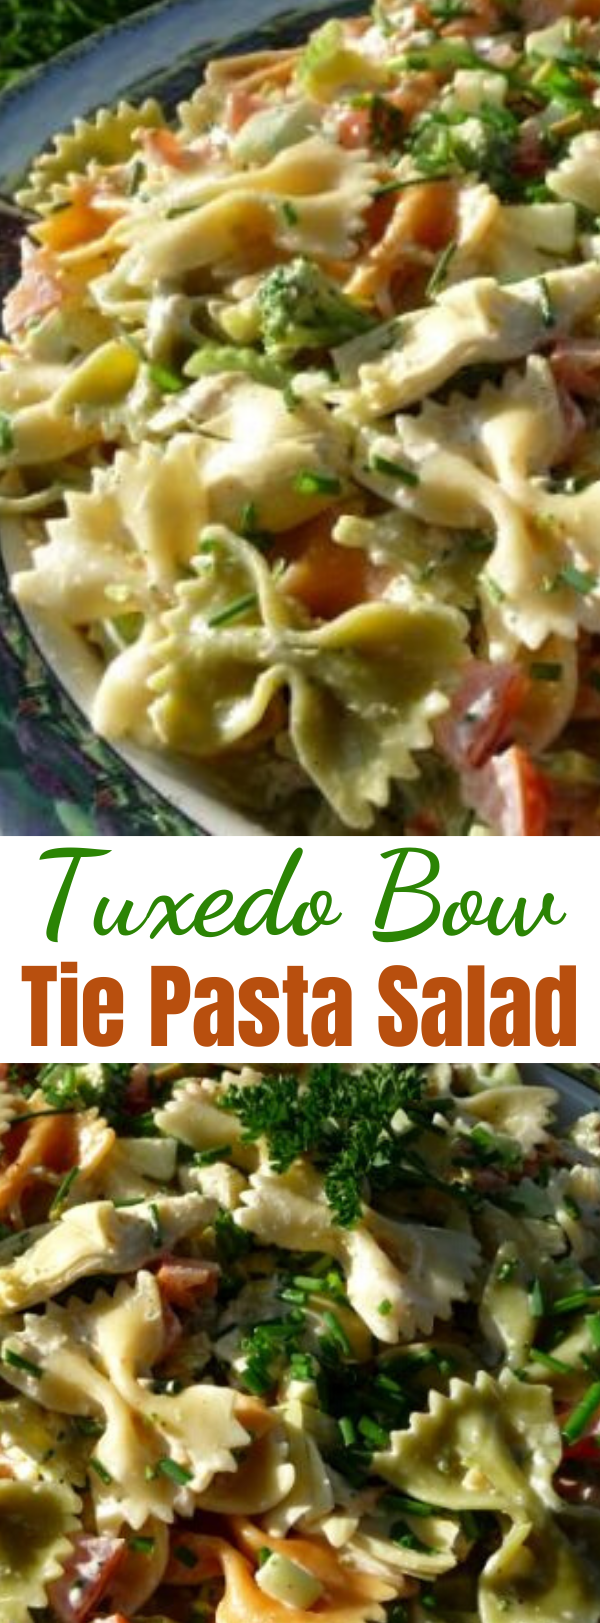 Tuxedo Bow Tie Pasta Salad - The perfect pasta salad for picnics, potlucks and gatherings. I've made this without the mayo, using the artichoke marinade in it's place, and it was equally fabulous and well received! Best served well chilled. #salad #saladrecipes #tuxedo #pastasalad #gathering #artichoke